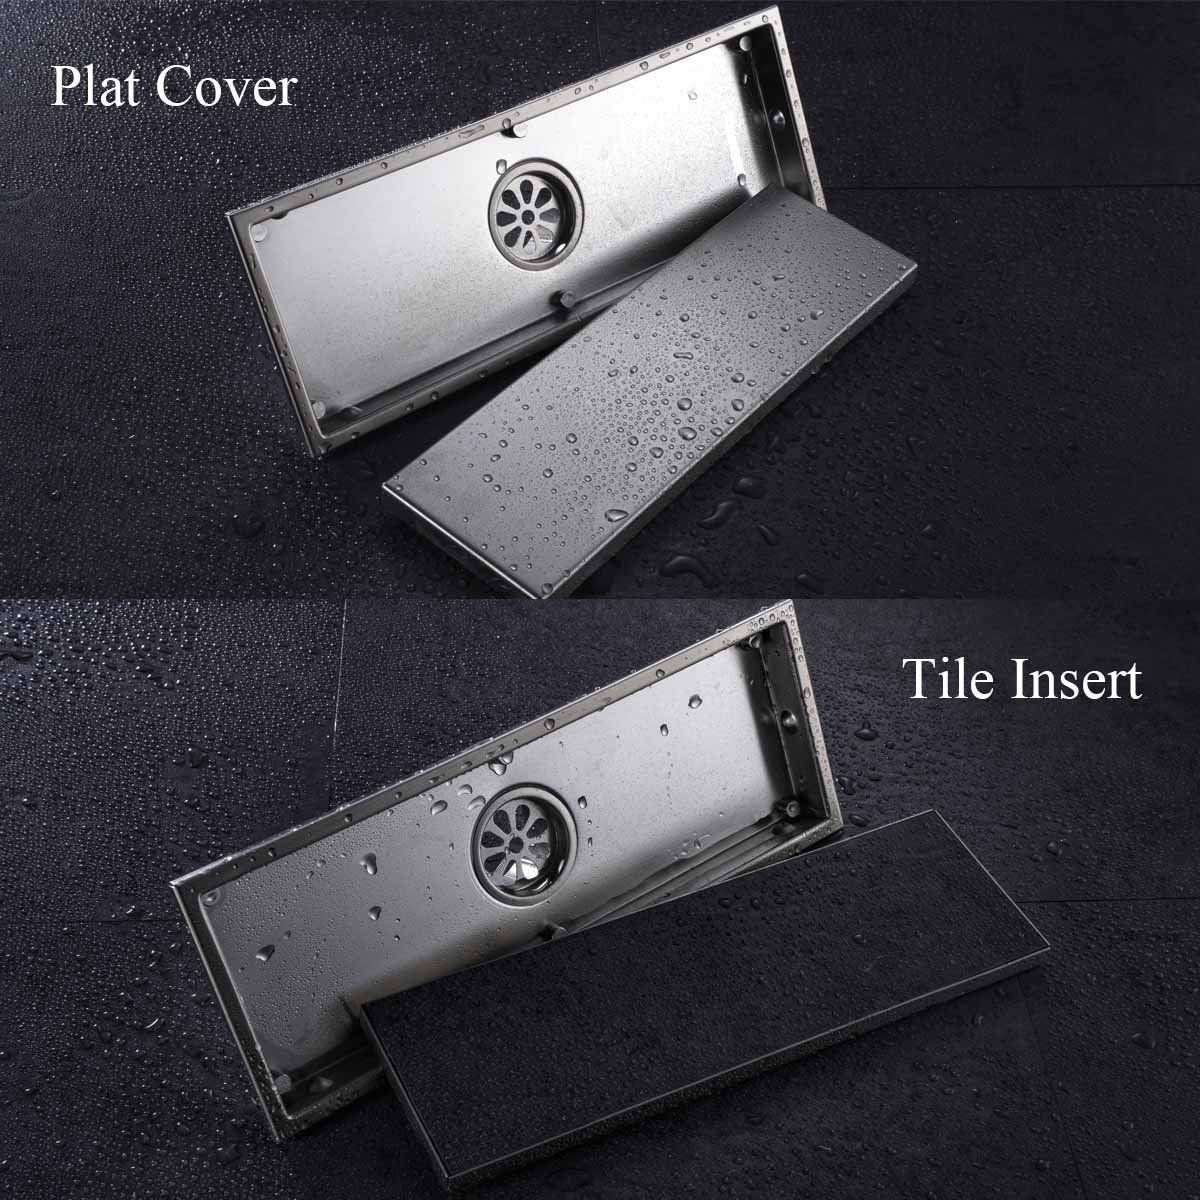 Hanebath Linear Shower Drain Floor Strainer With Tile Insert Grate Made Of Sus304 Stainless Steel 12 Inch Long Shower Drain Floor Drains Bathroom Hardware